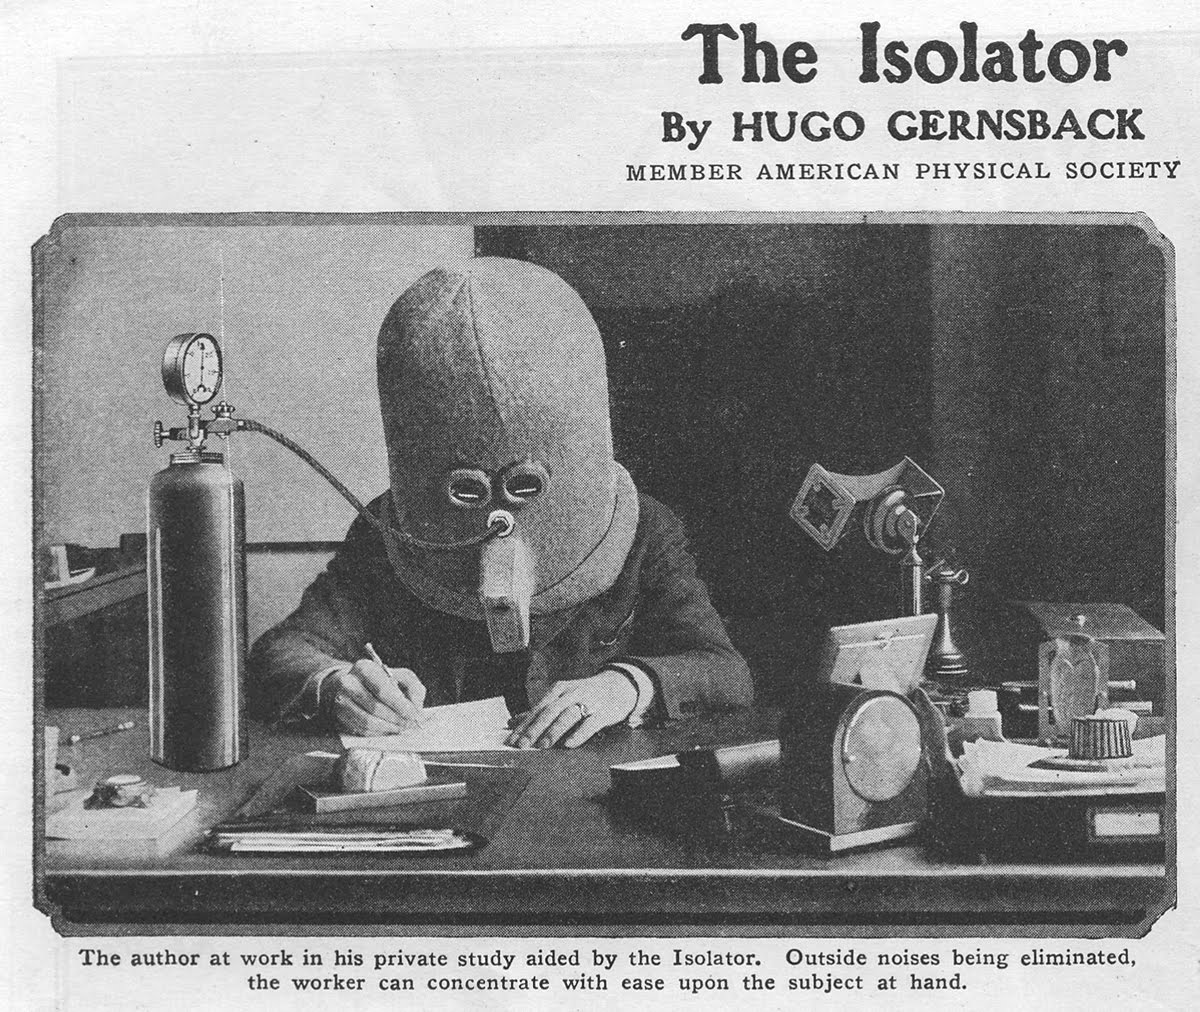 The Isolator, avant la lettre productivity tool.